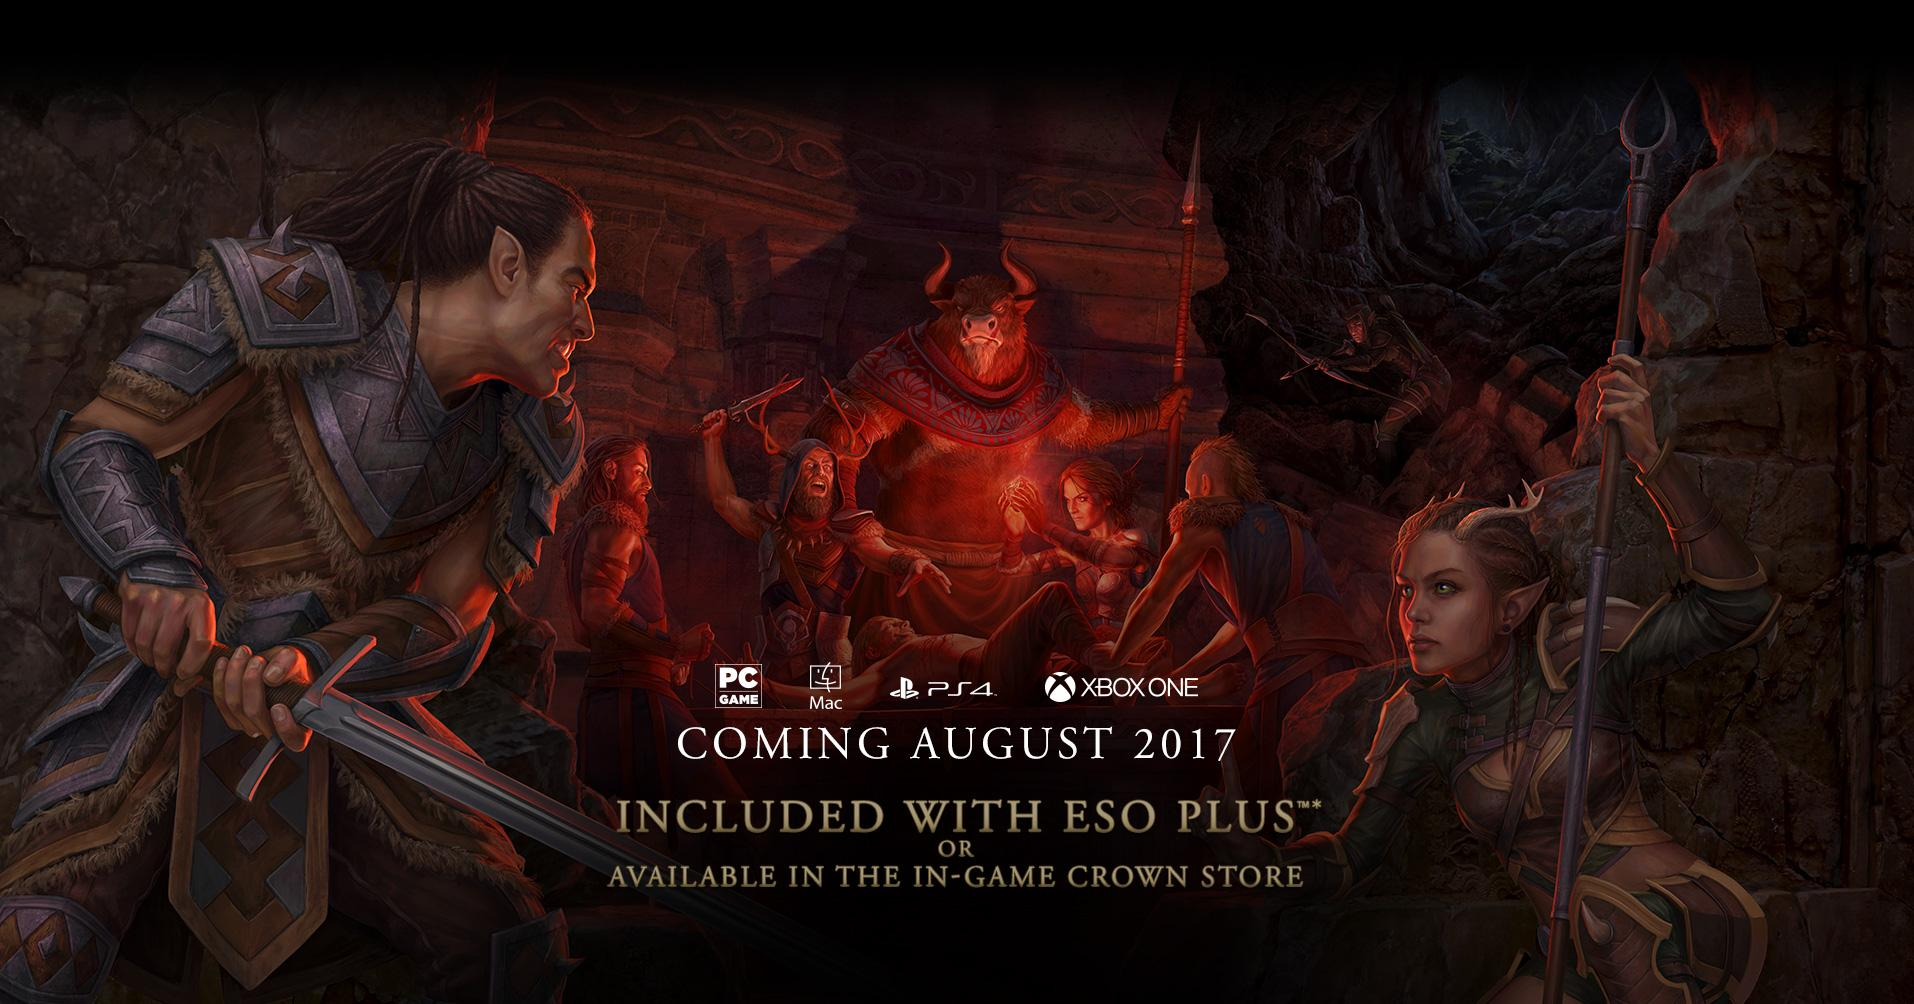 Bethesda Plans To Release New DLC Pack For The Elder Scrolls Online MMORPG